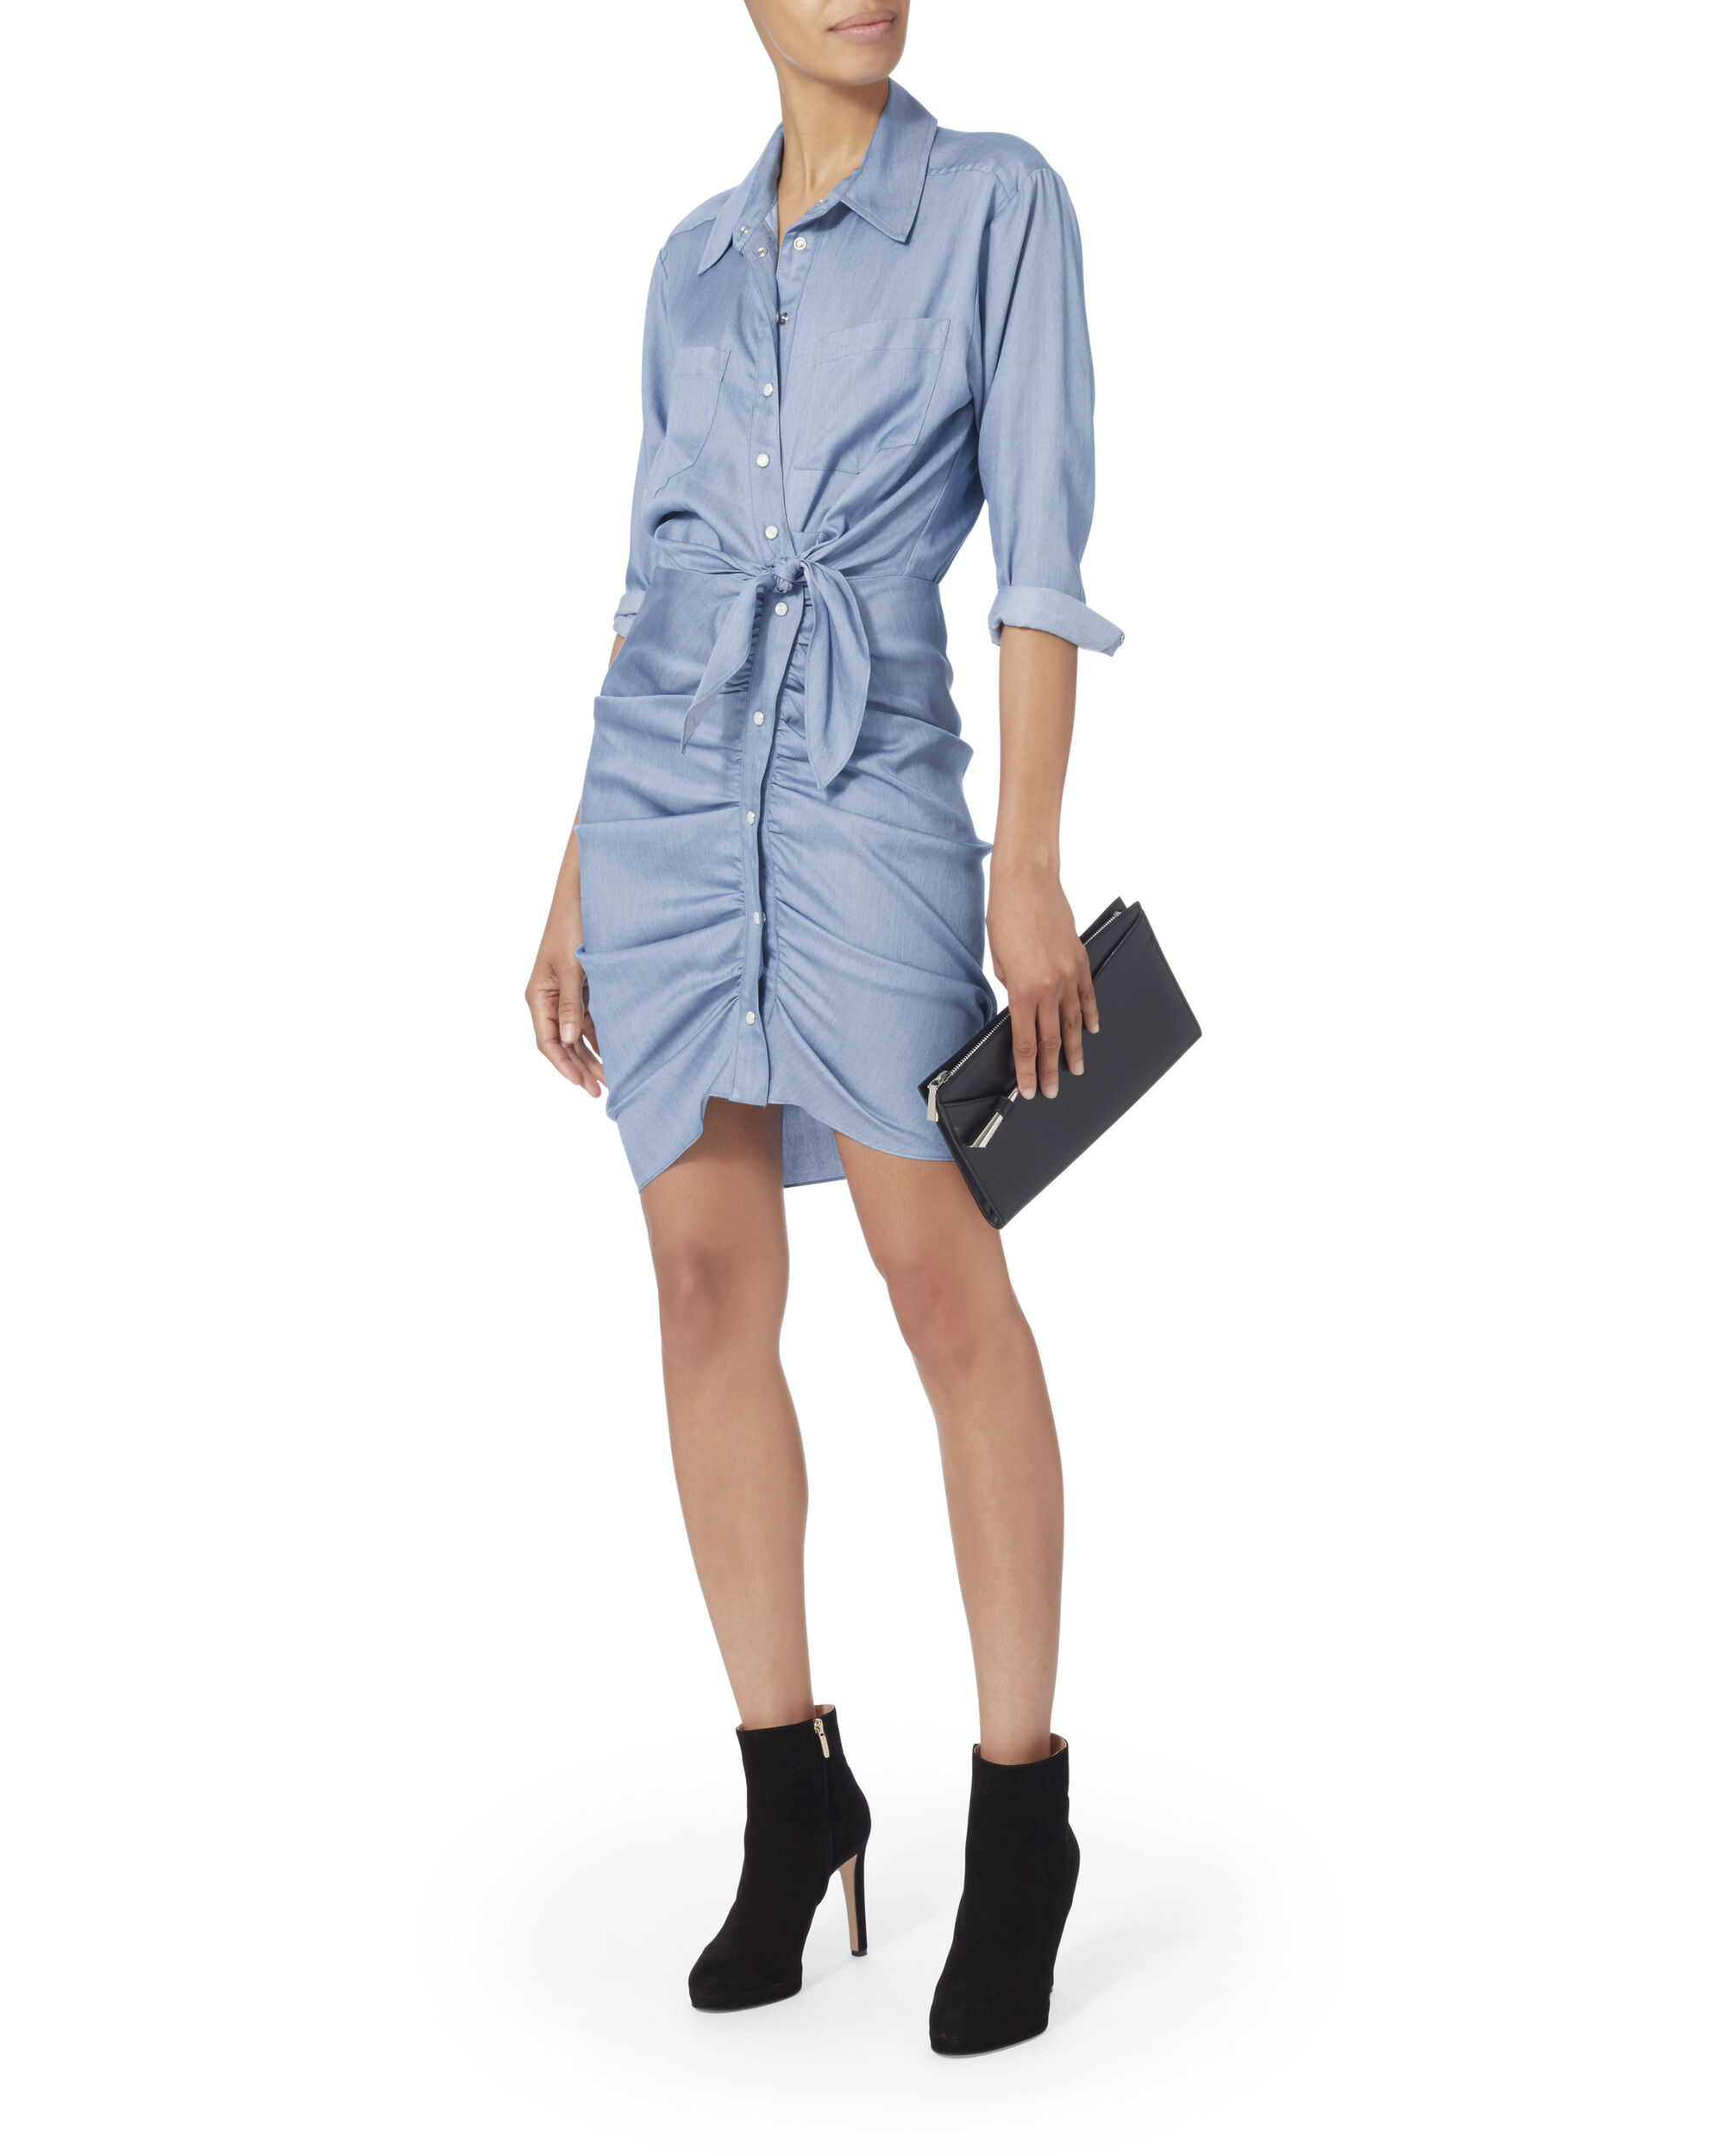 Sierra Chambray Ruched Mini Dress, , hi-res